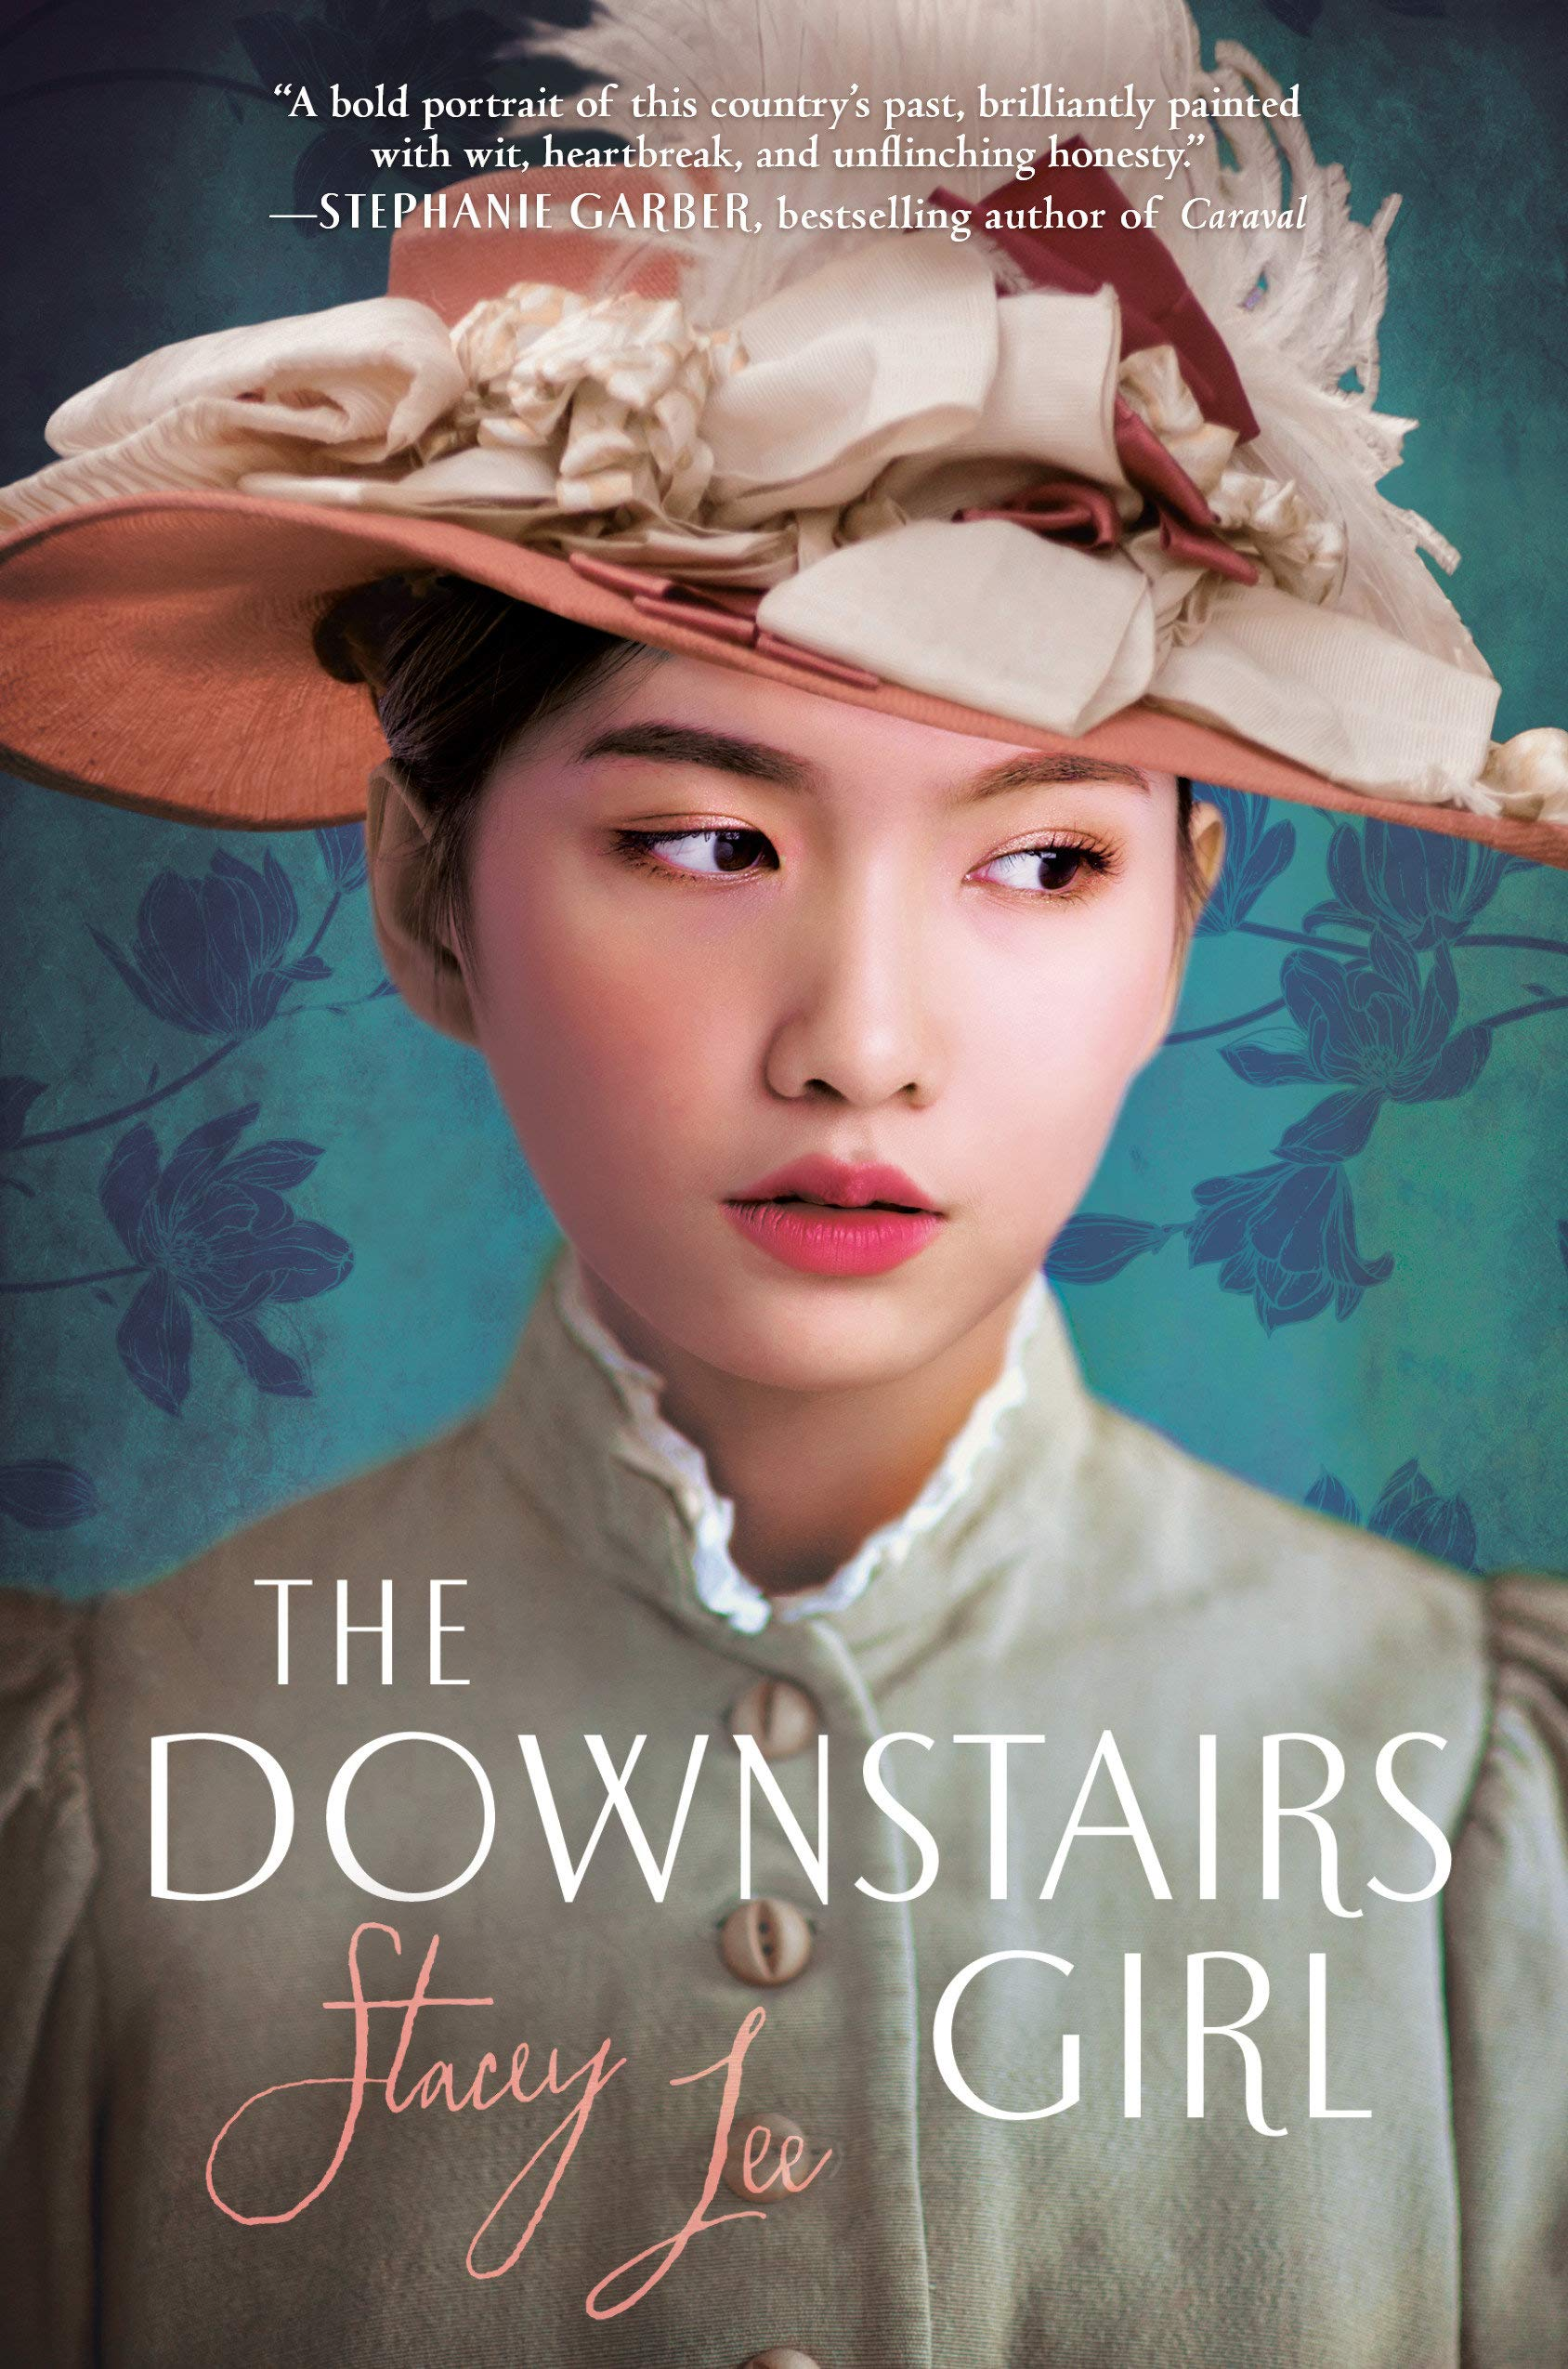 The Downstairs Girl by Stacey Lee